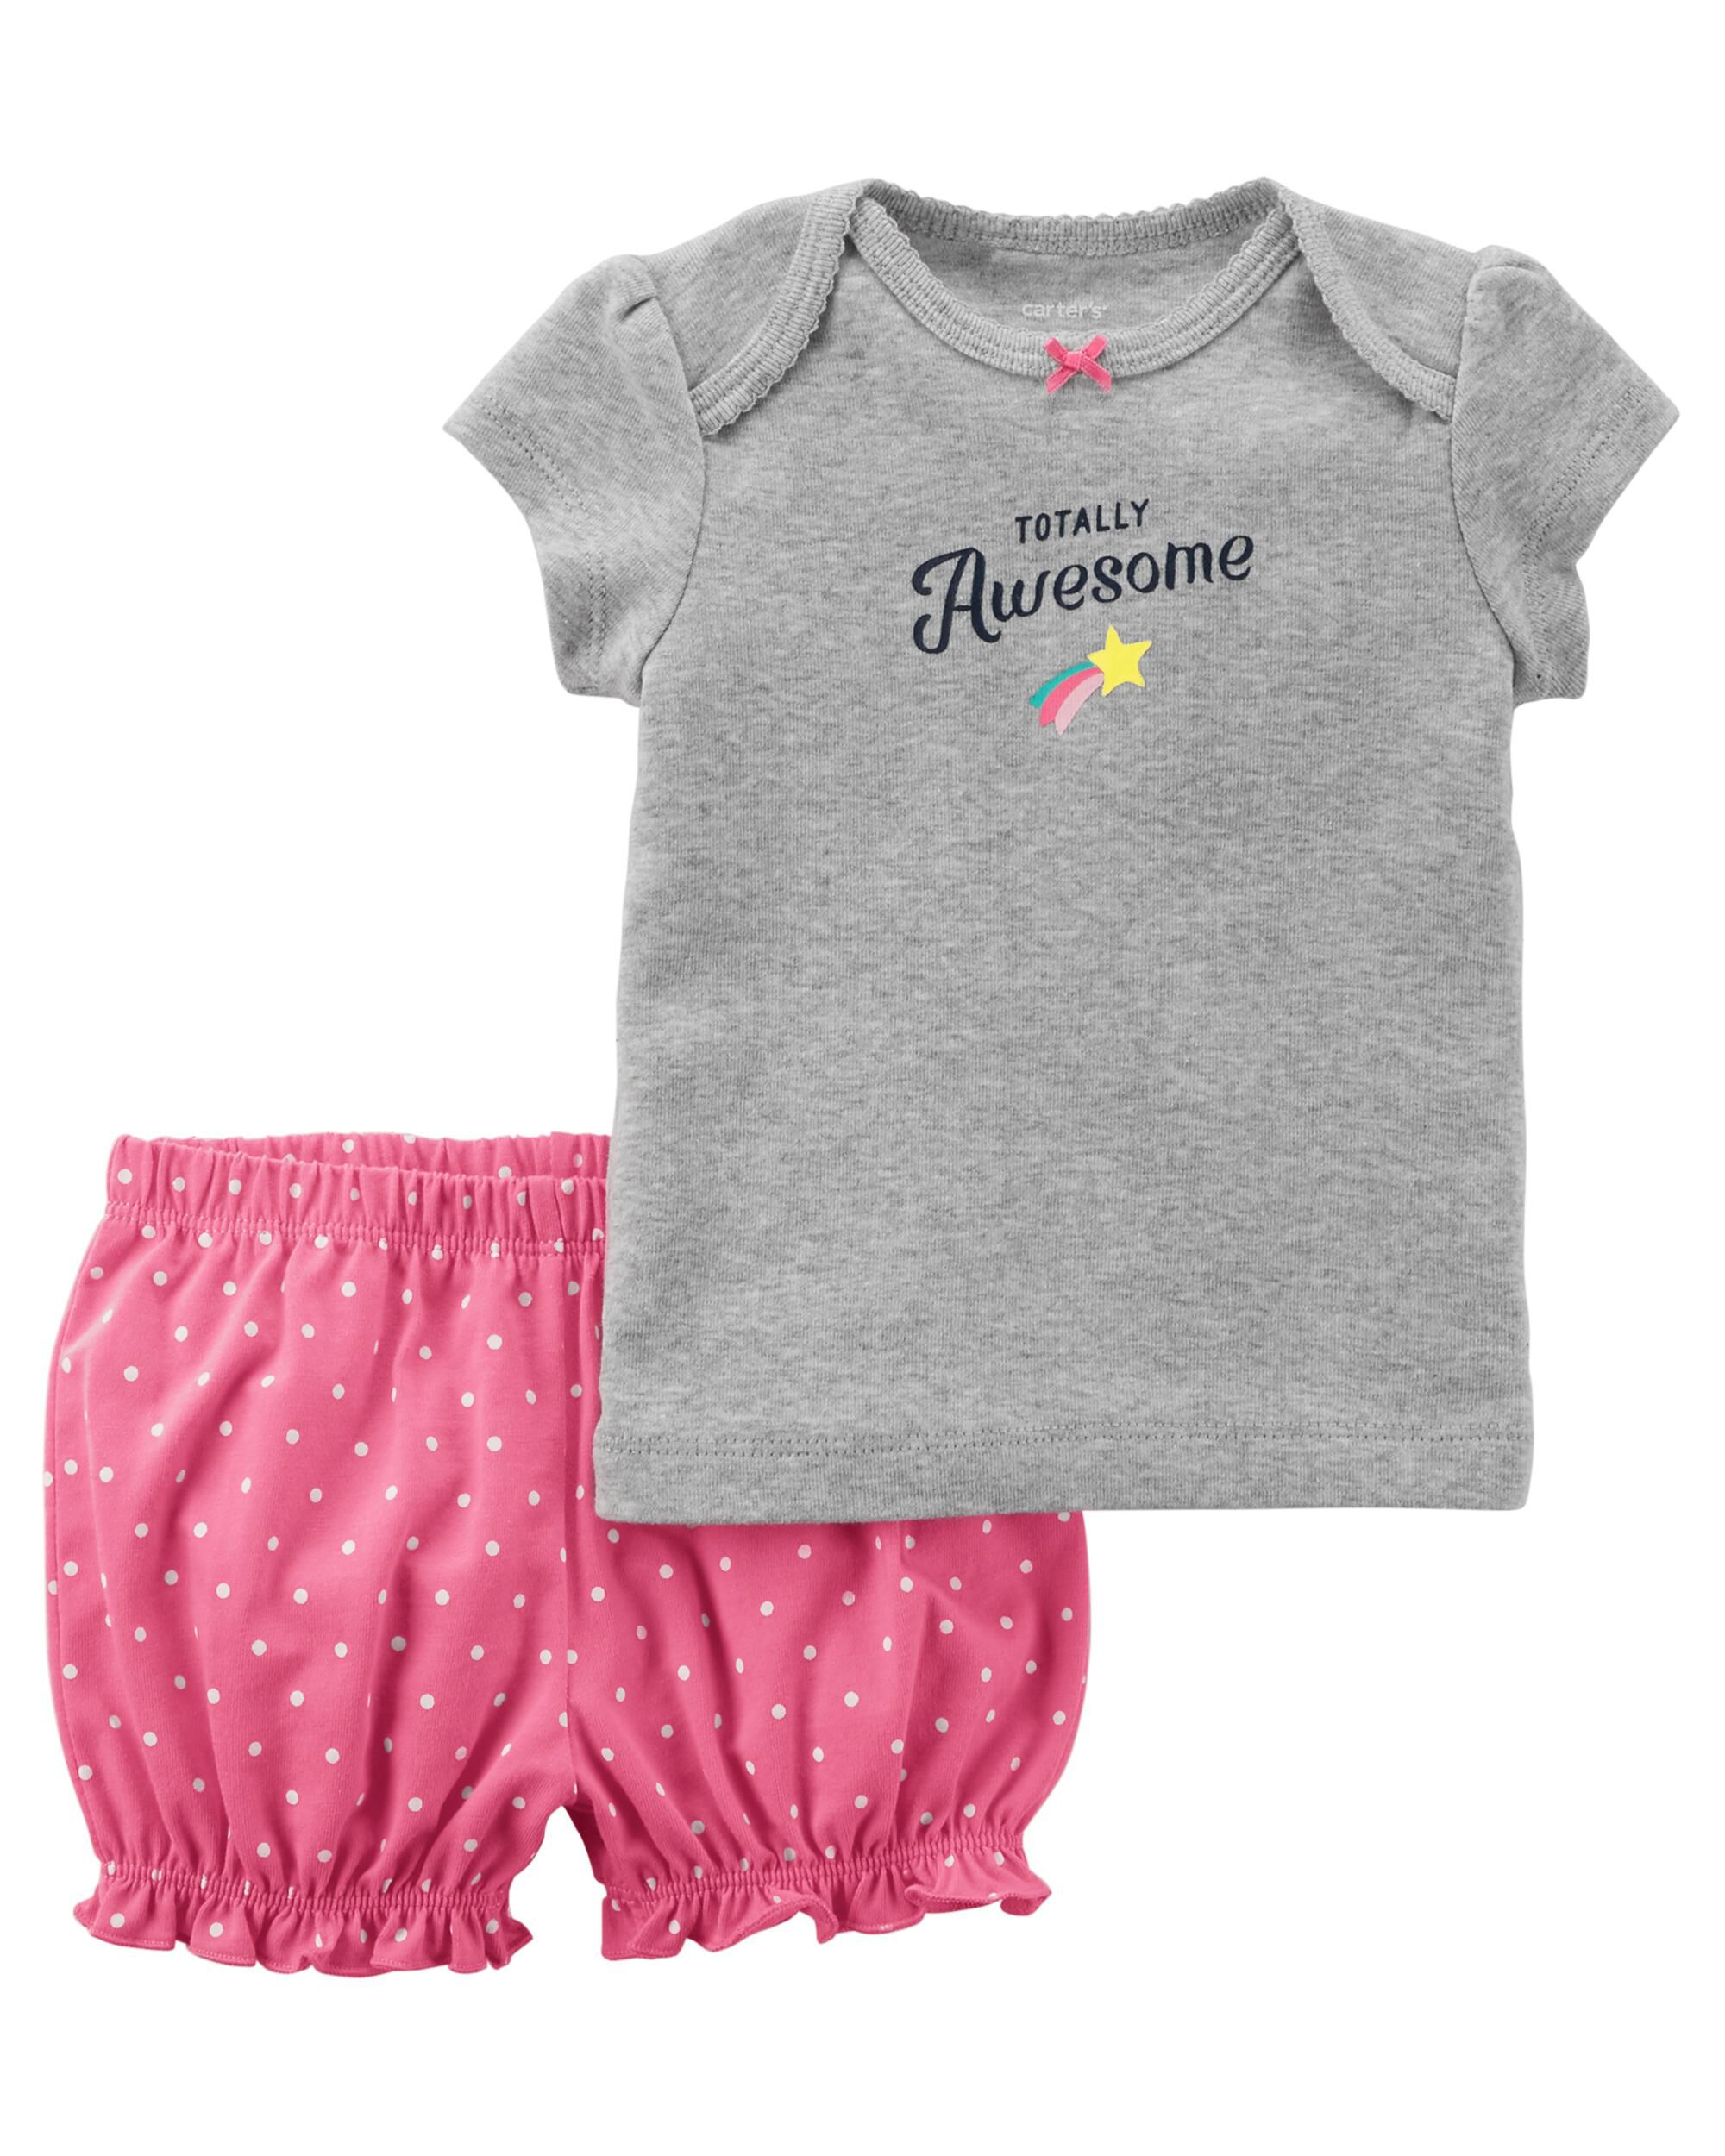 9M - Totally Awesome Baby Carters Baby Girls Slogan Tee